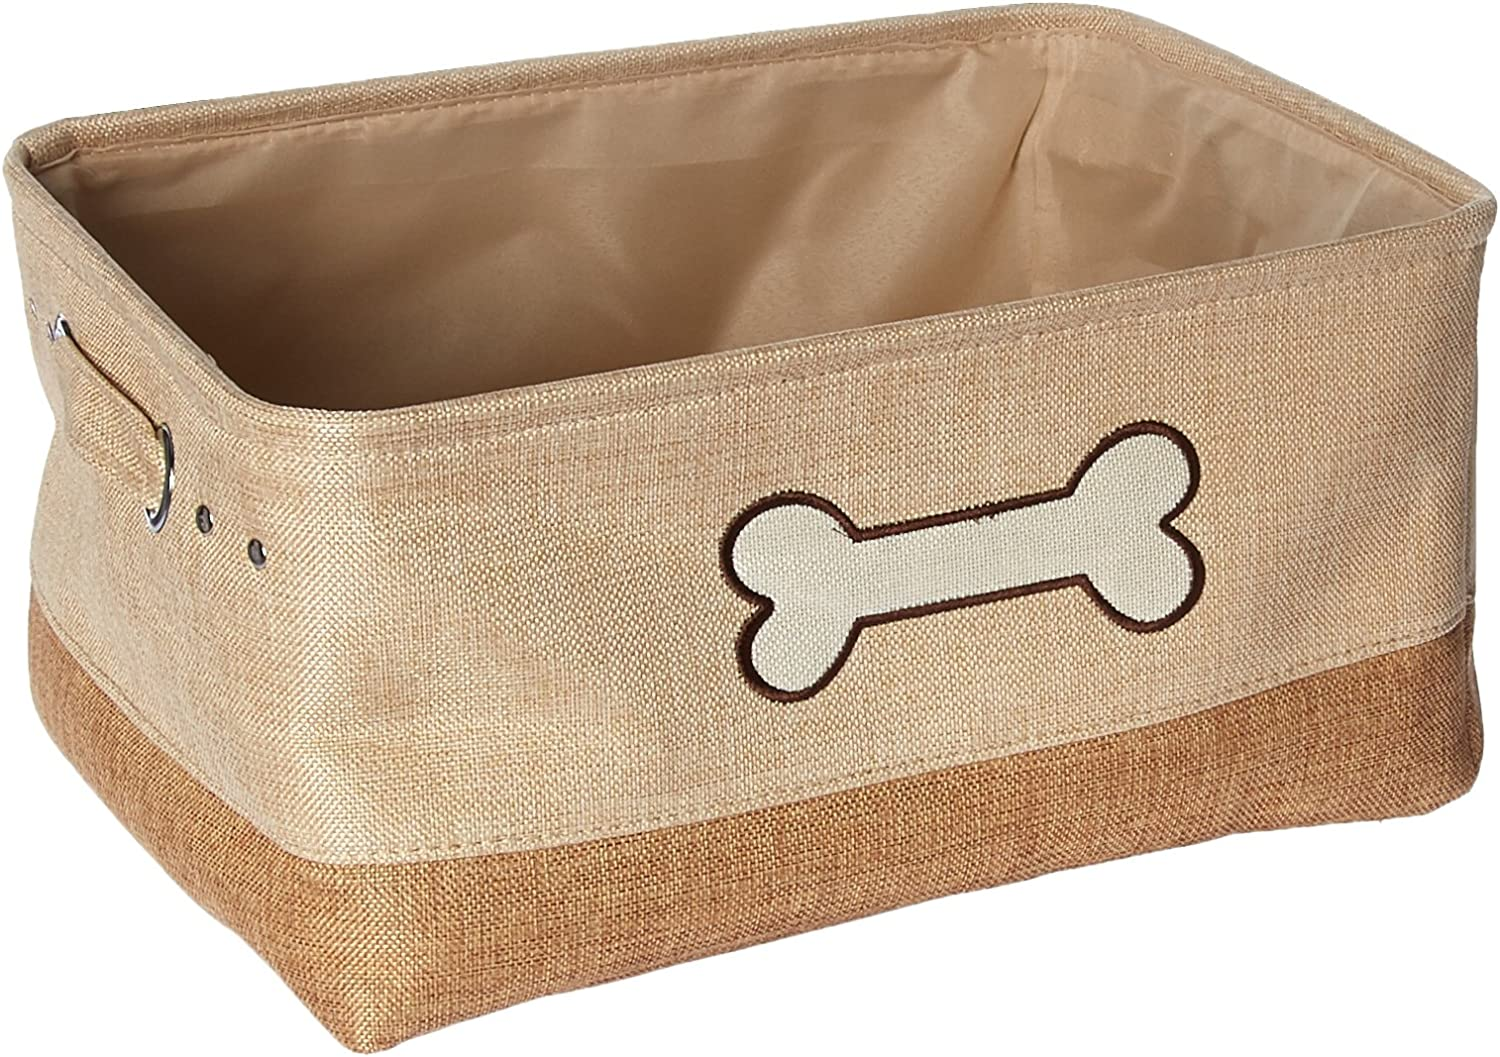 Winifred & Lily Pet Toy and Accessory Storage Bin, Organizer Storage Basket for Pet Toys, Blankets, Leashes and Food in Embroidered Dog Bone, Beige/Brown